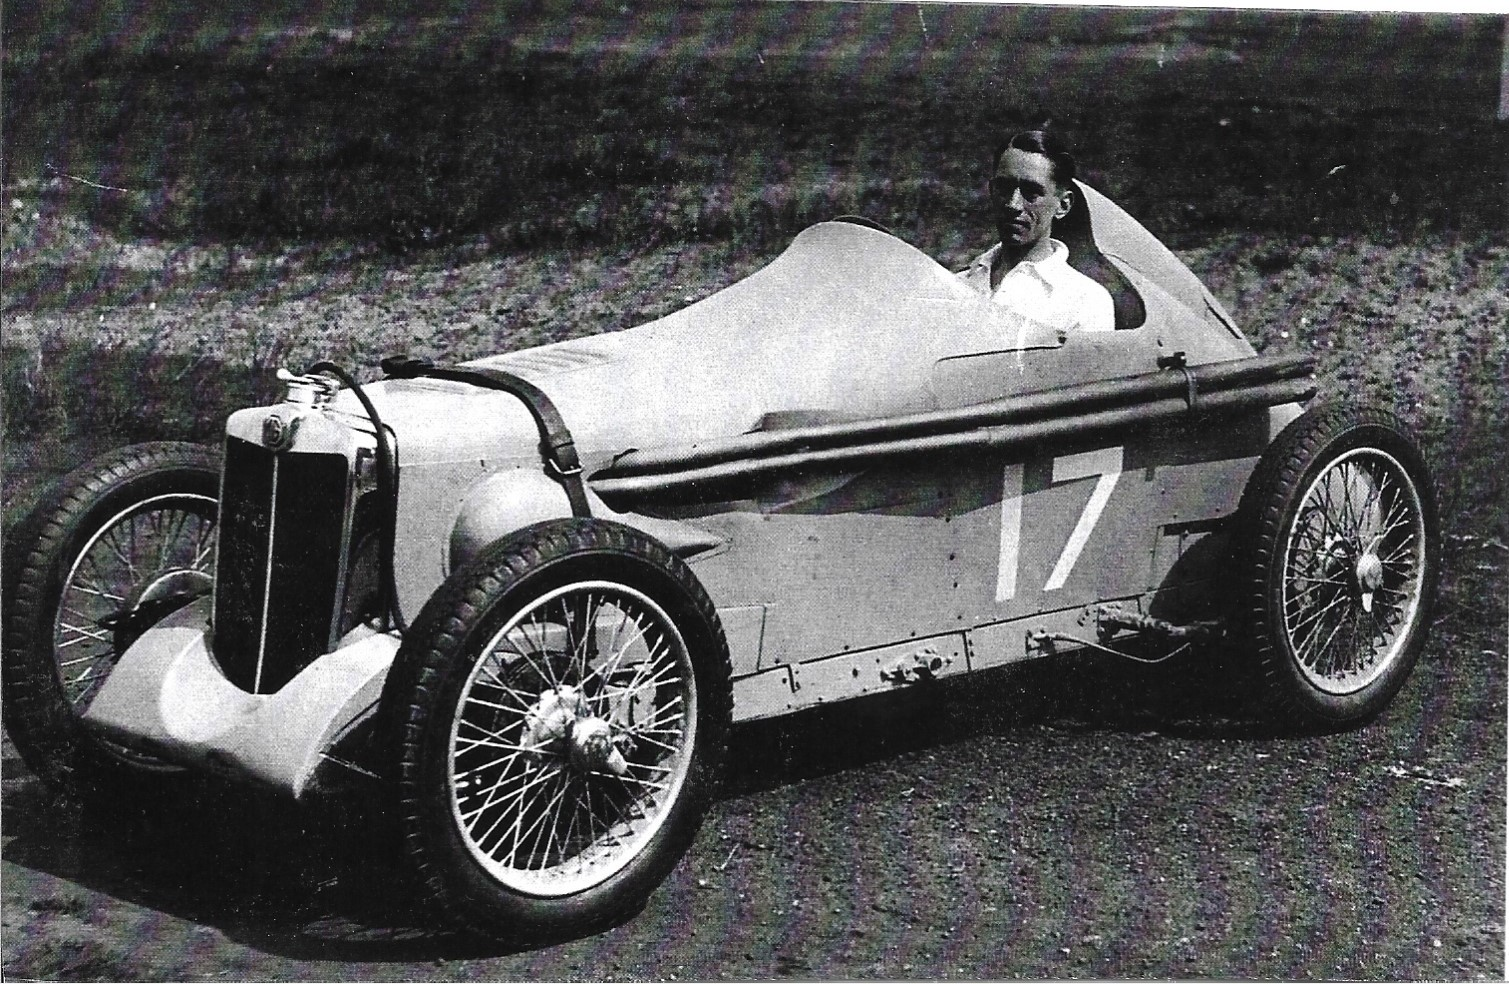 The MG J3 on 5th may 1938 with Mr Highley on board. Photo by Nev Churcher